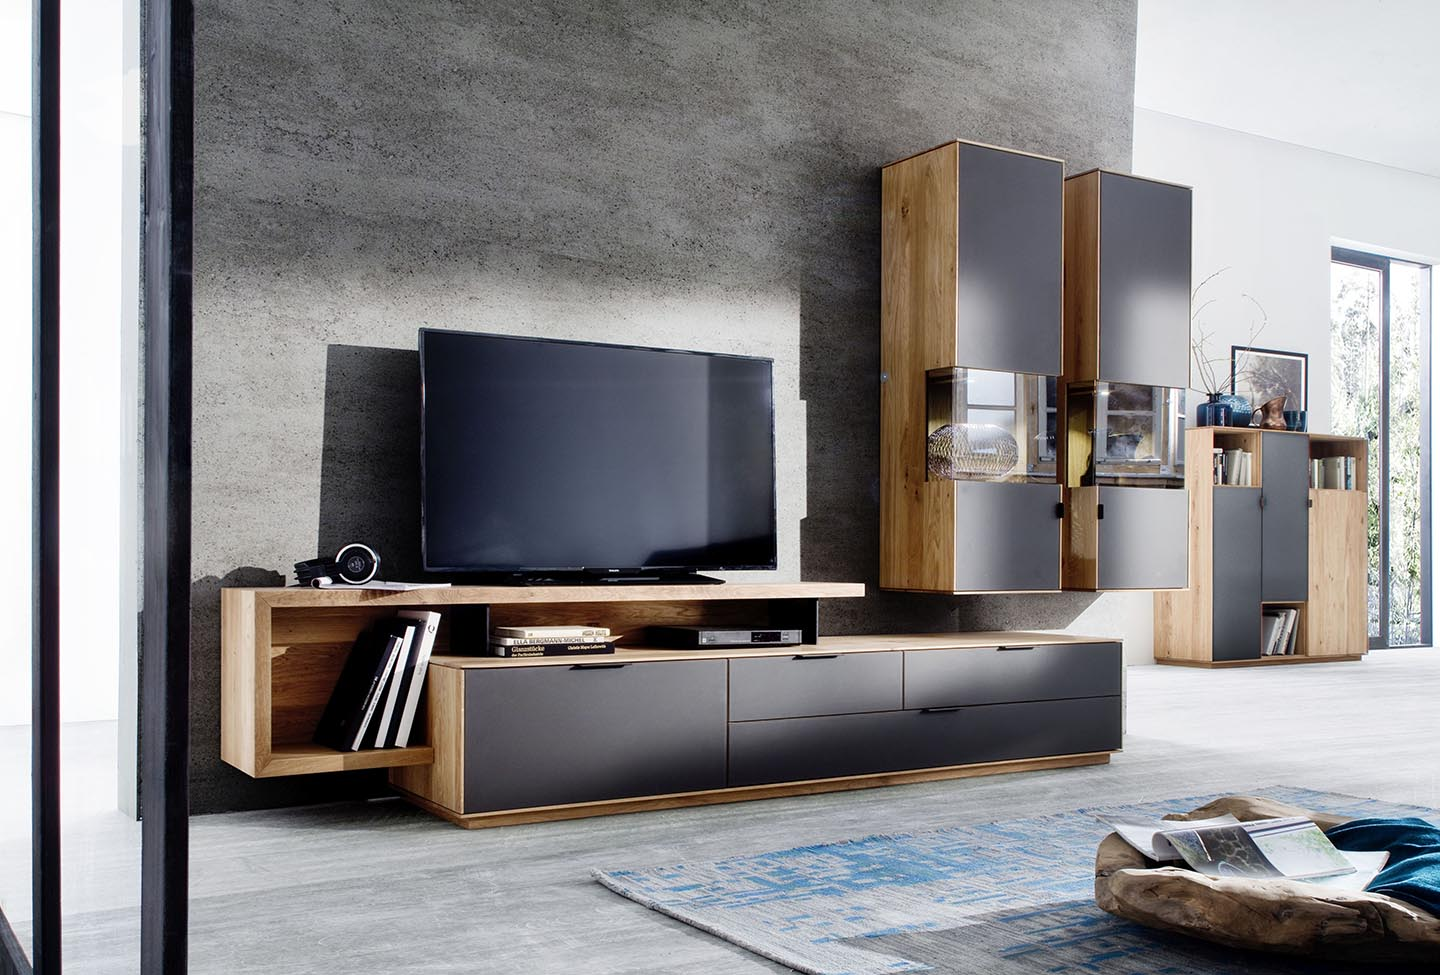 einrichtungshaus reimann seit ber 50 jahren. Black Bedroom Furniture Sets. Home Design Ideas